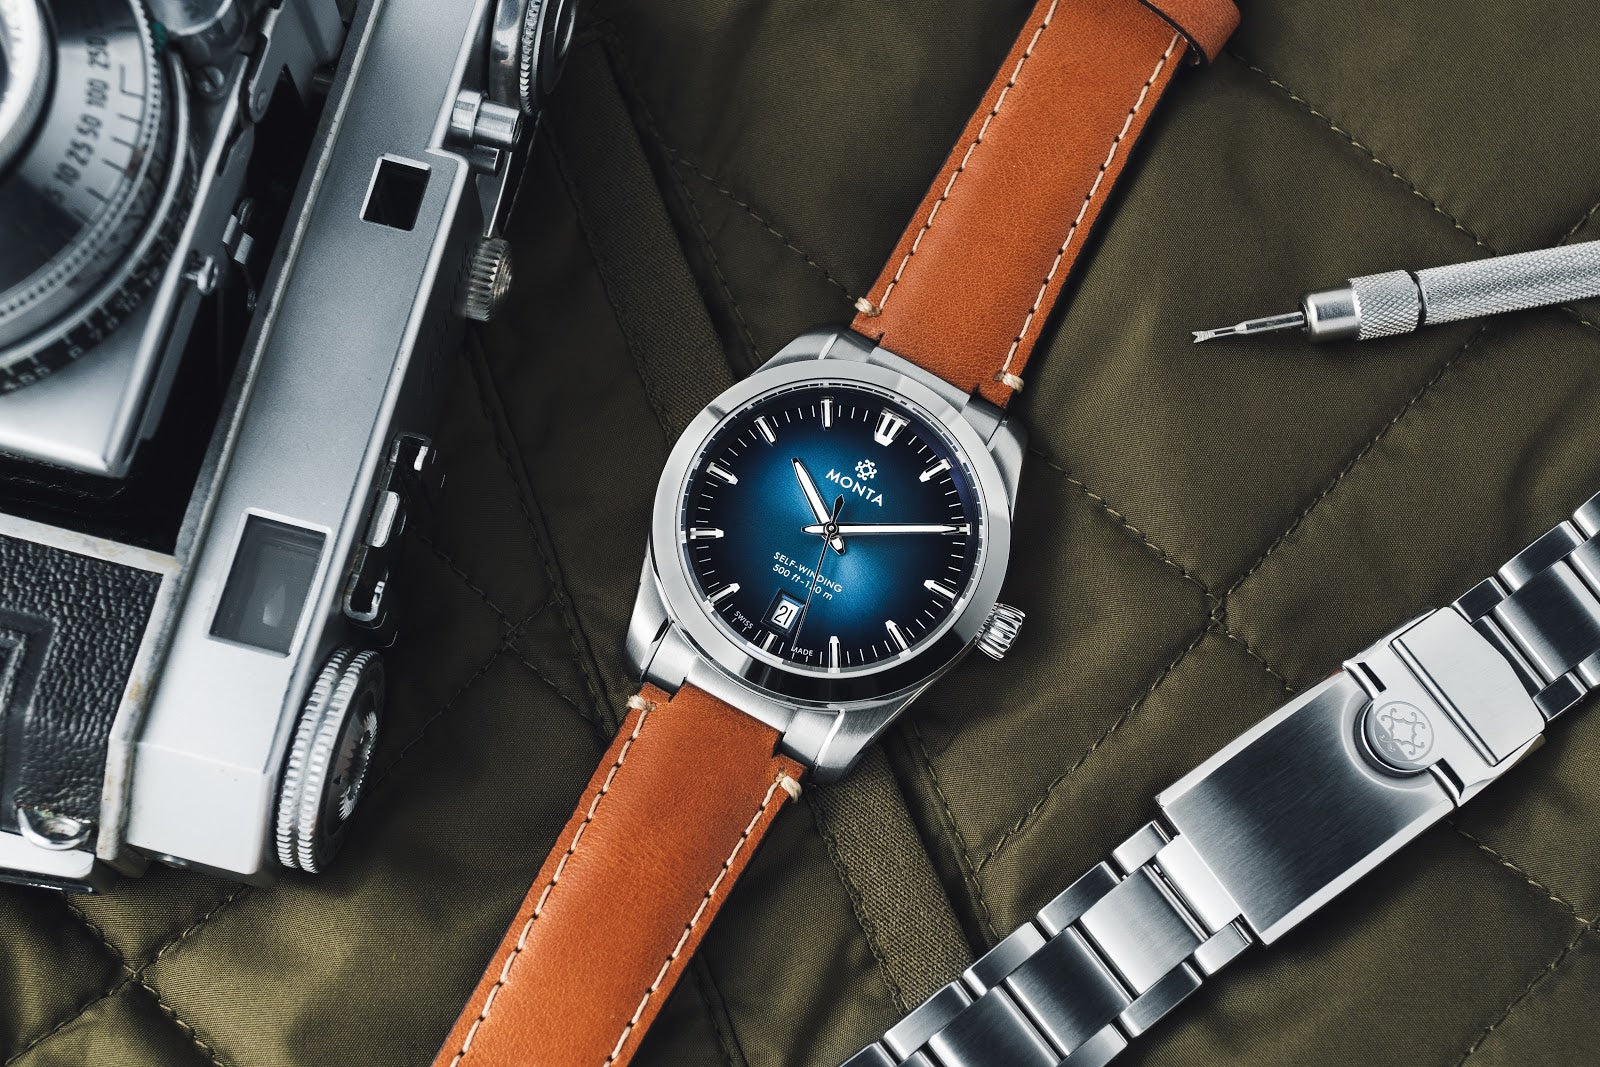 MONTA noble watch with blue dial on leather strap